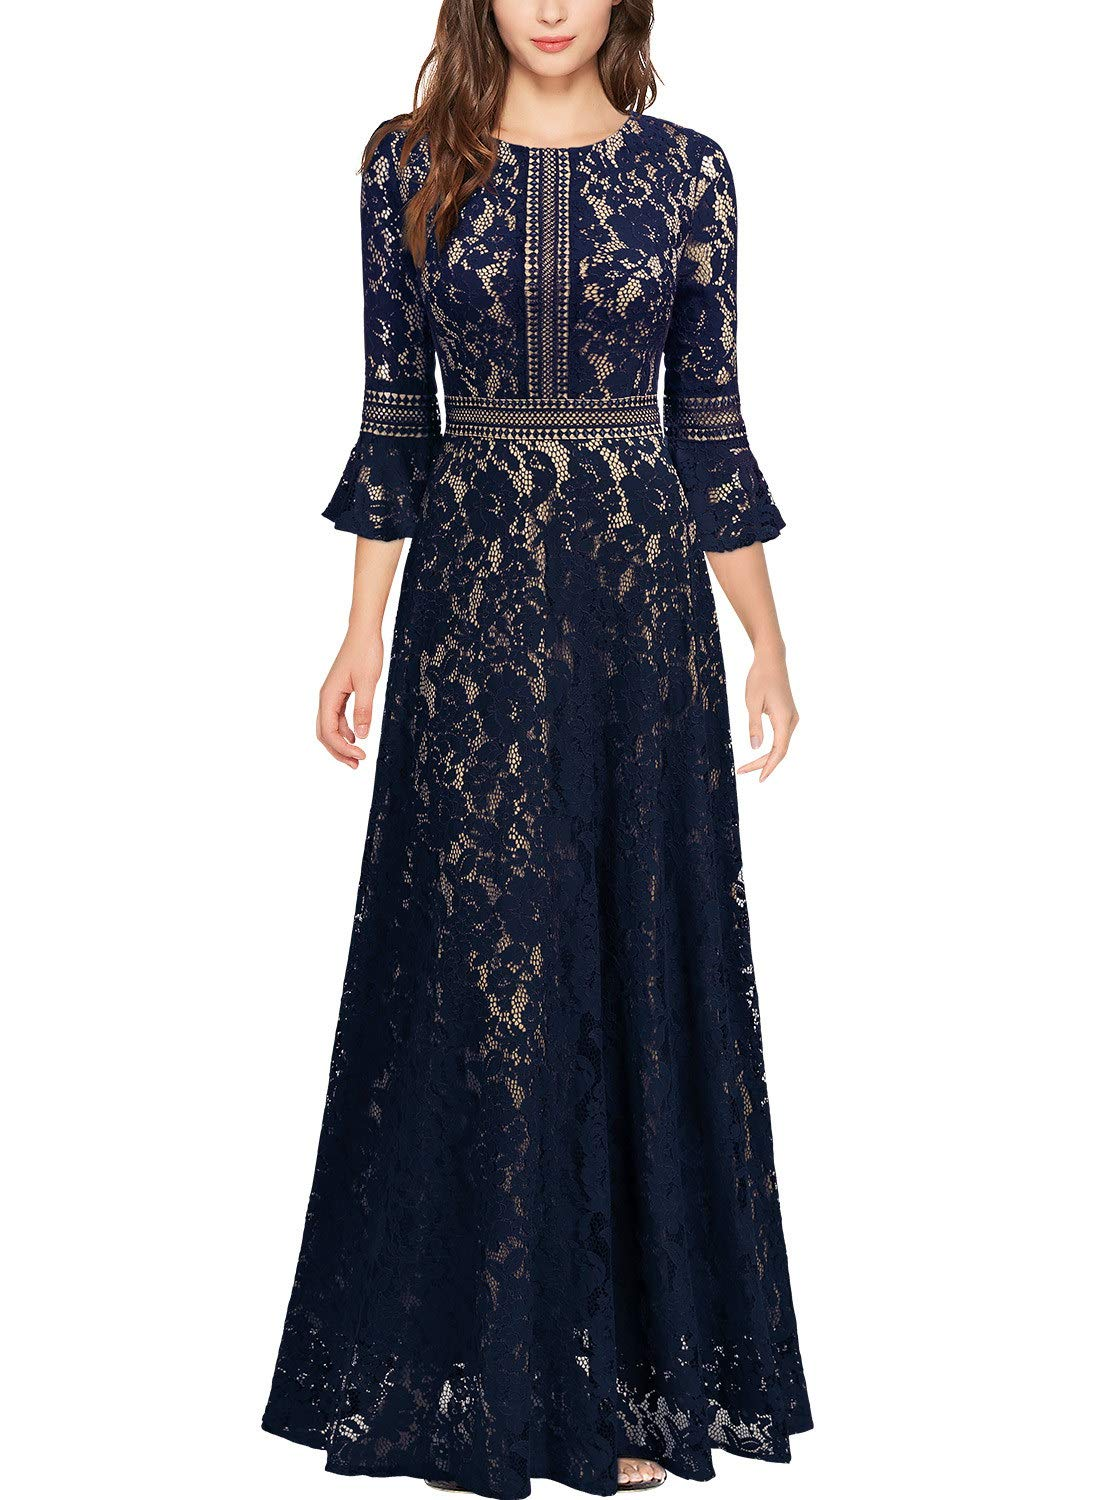 Mother Of The Bride Dresses - Women's Vintage Full Lace Contrast Bell Sleeve Formal Long Dress